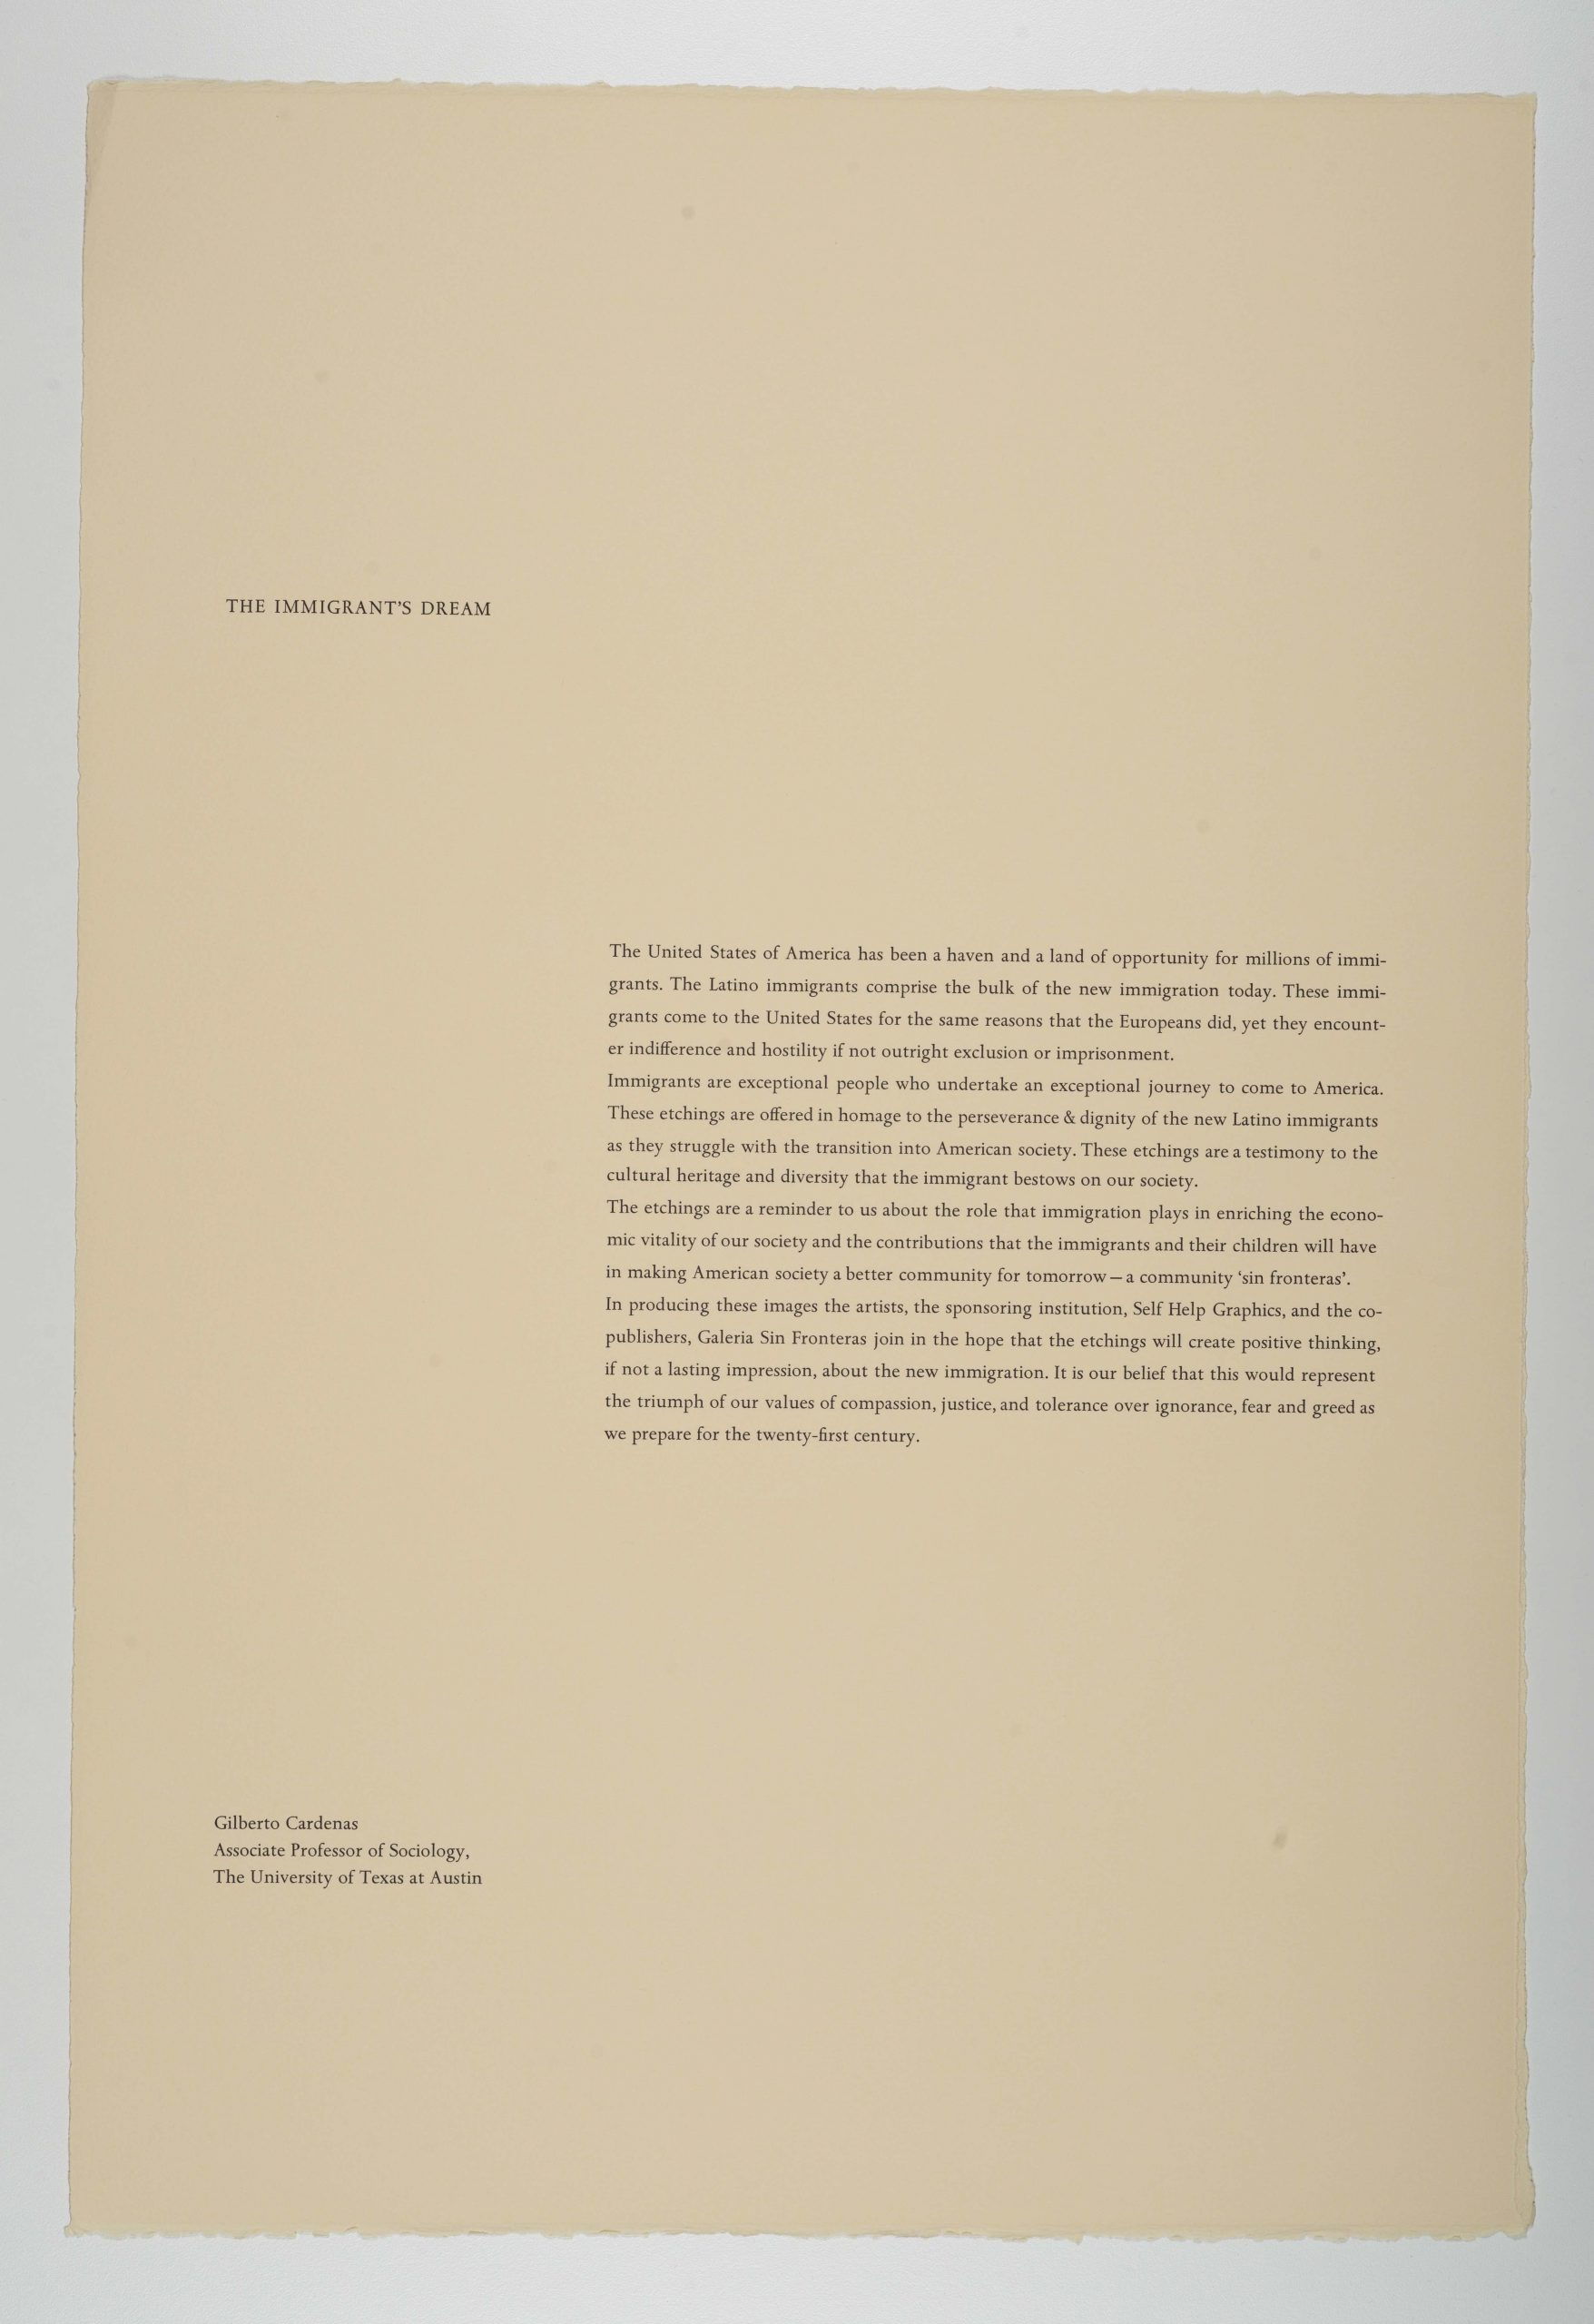 The Immigrant's Dream, The New Immigration series, 1988